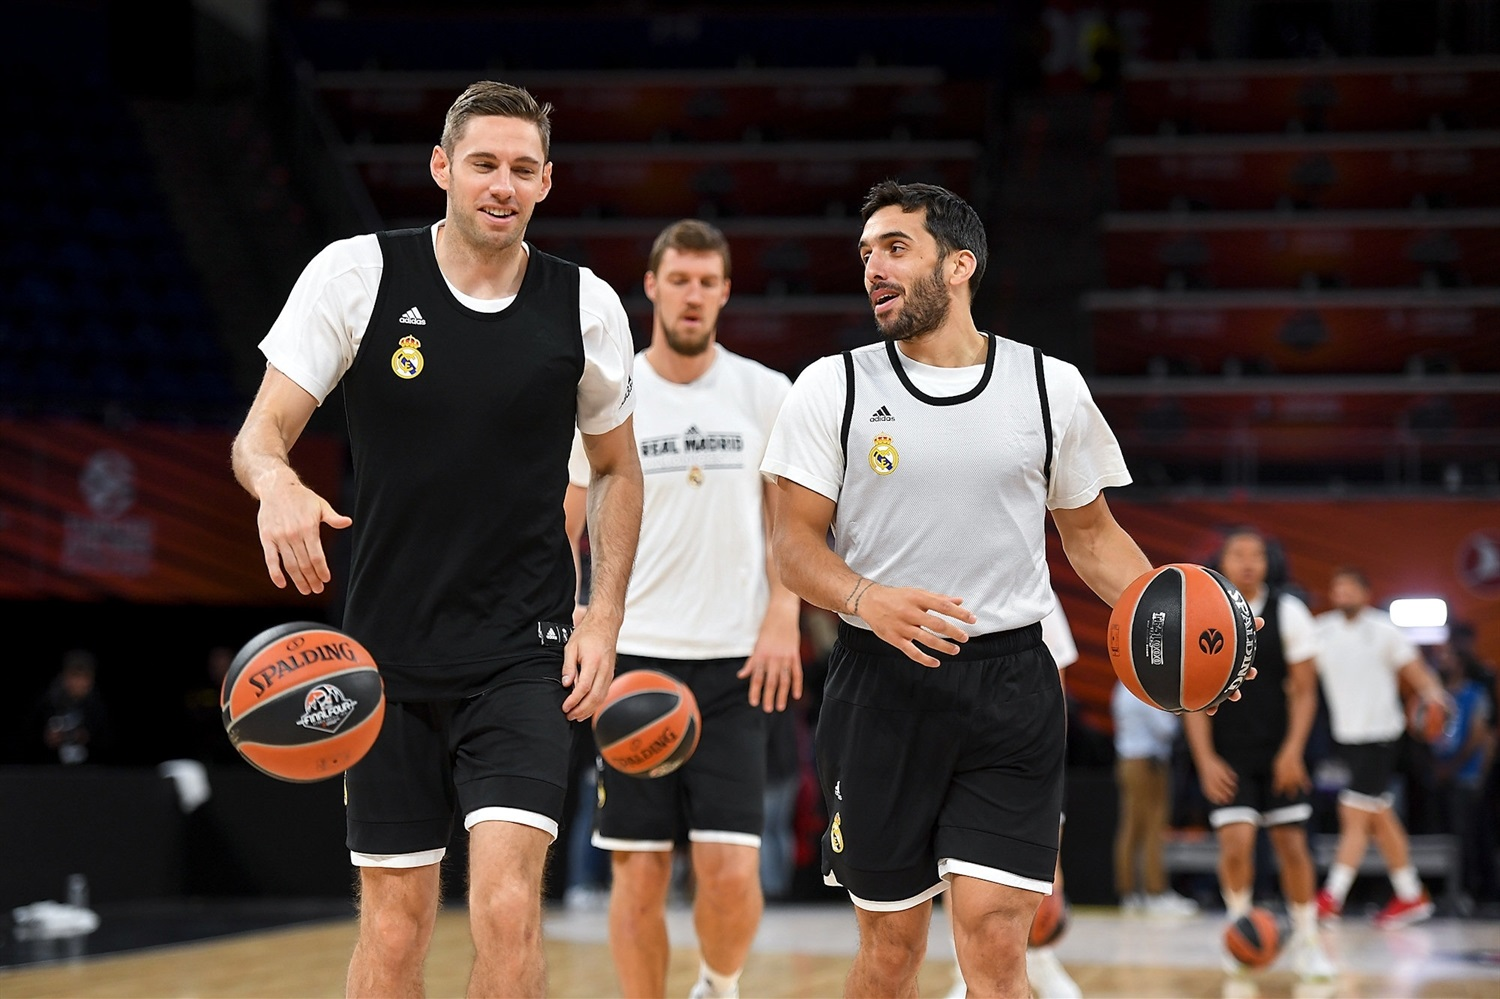 Fabien Causeur - Real Madrid practices - Final Four Vitoria-Gasteiz 2019 - EB18